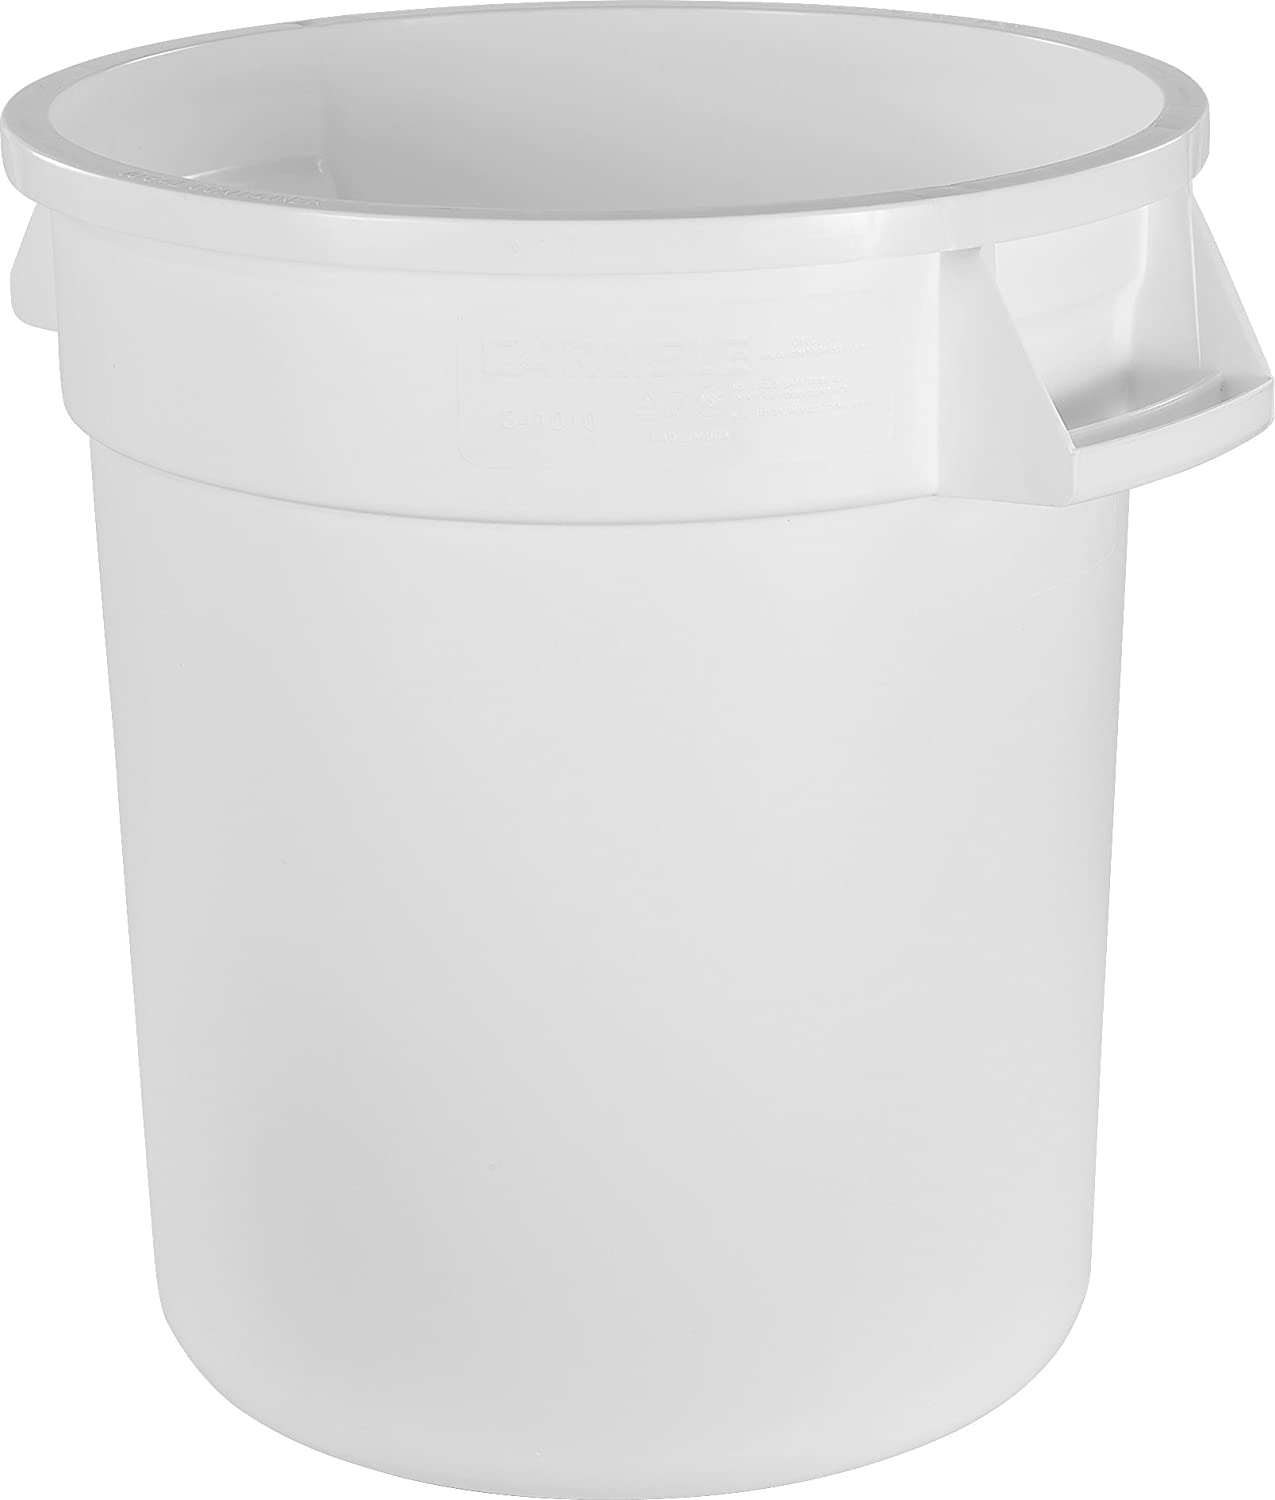 Carlisle 34101002 Bronco Round Waste Container Only, 10 Gallon, White